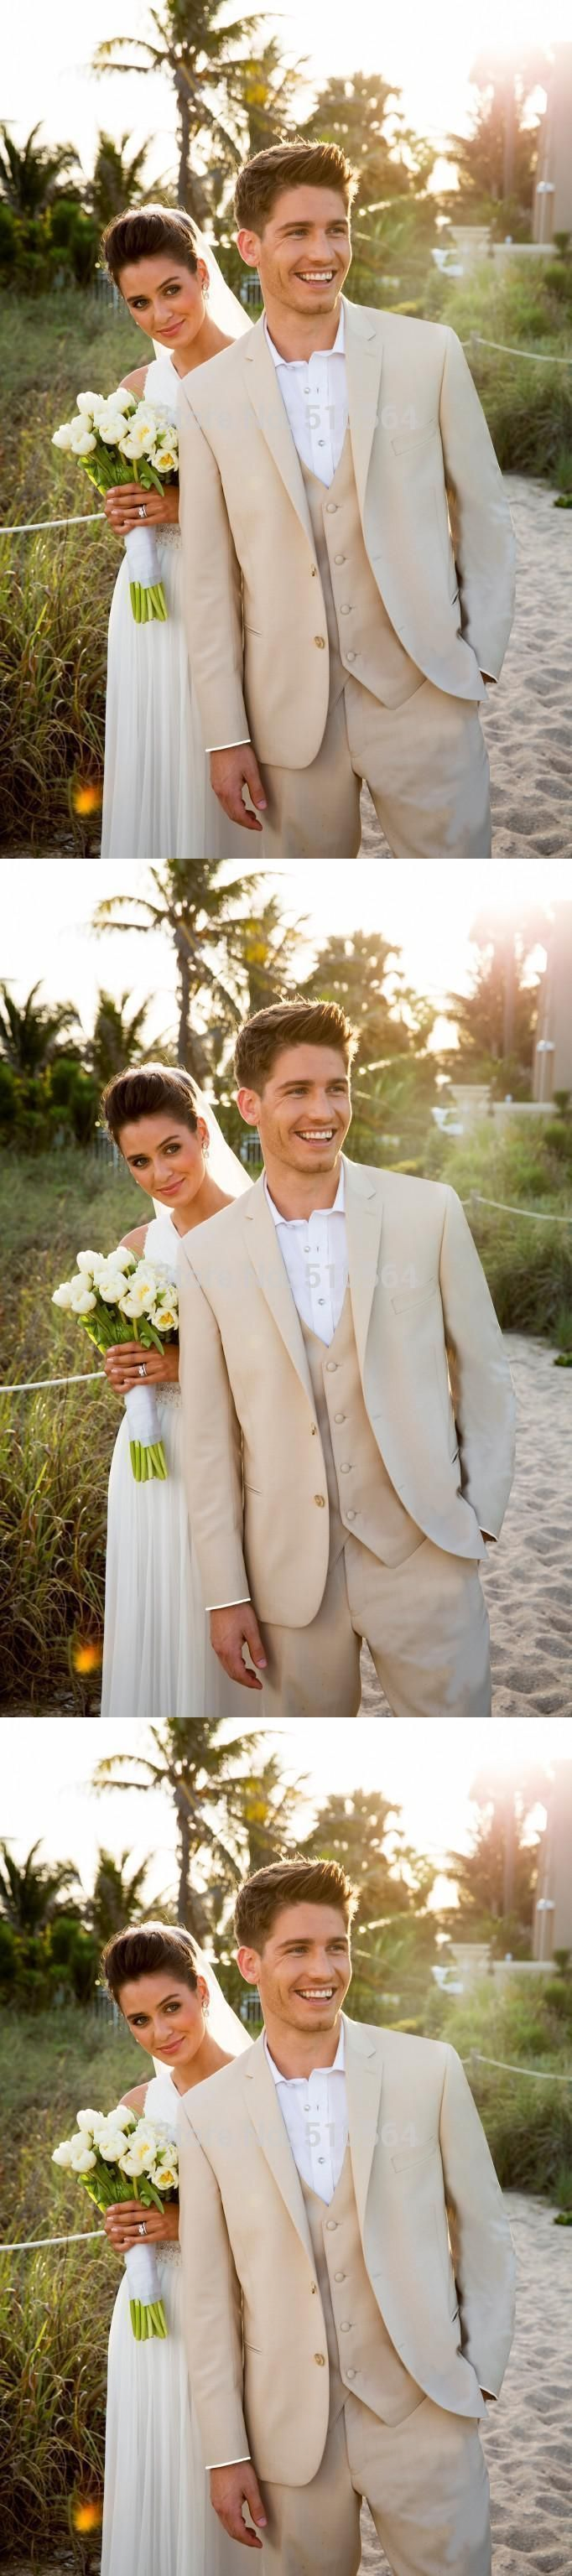 beige mens suits for wedding custom made men tuxedos wedding